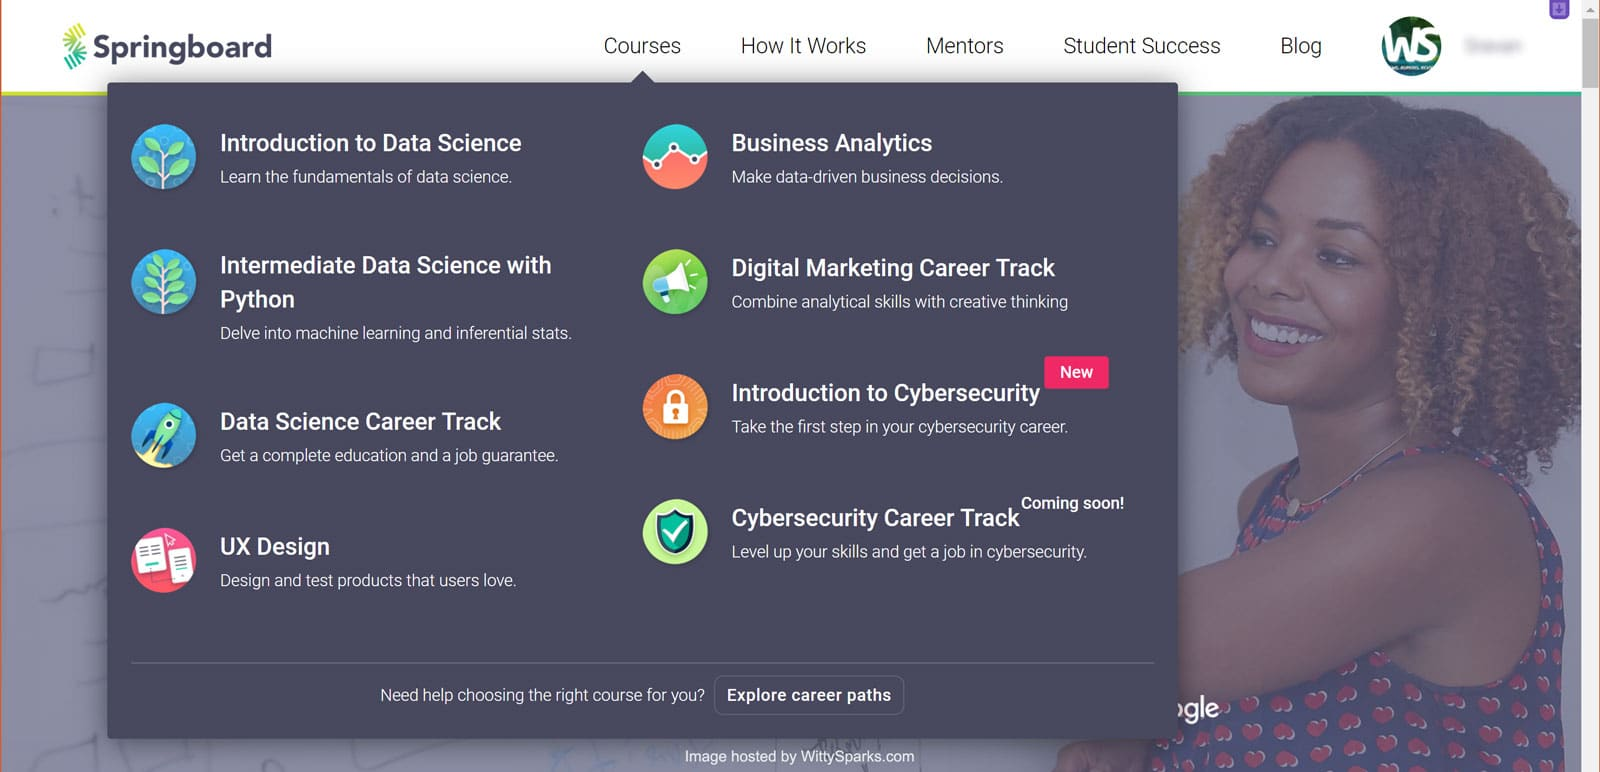 Springboard: The Unique Platform to Launch Careers